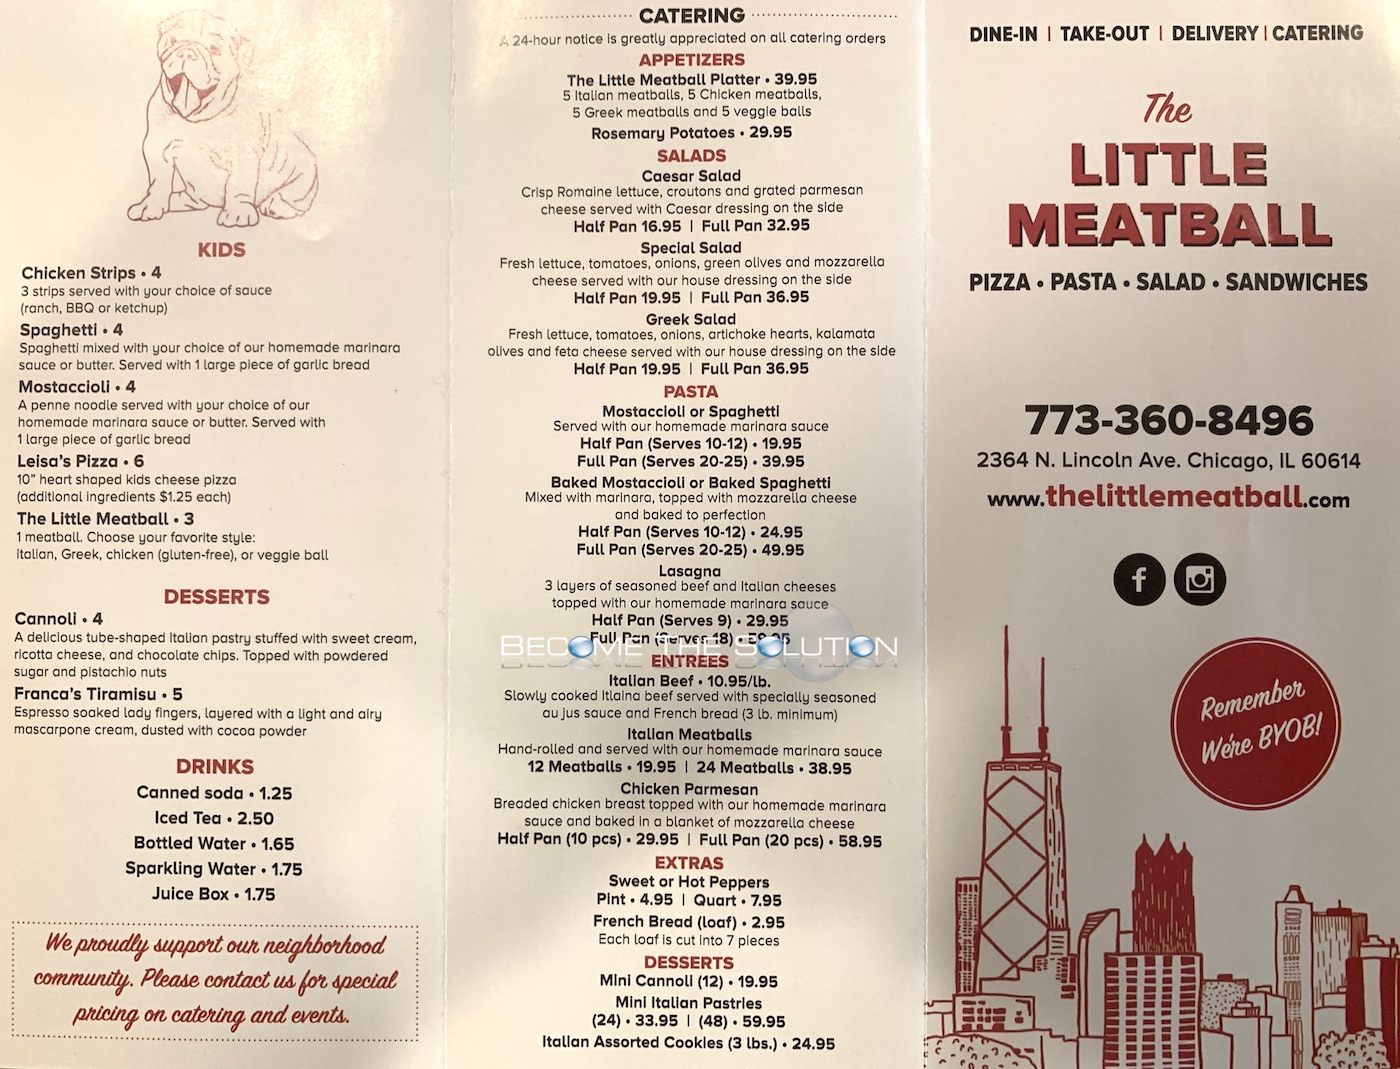 The little meatball chicago menu 1